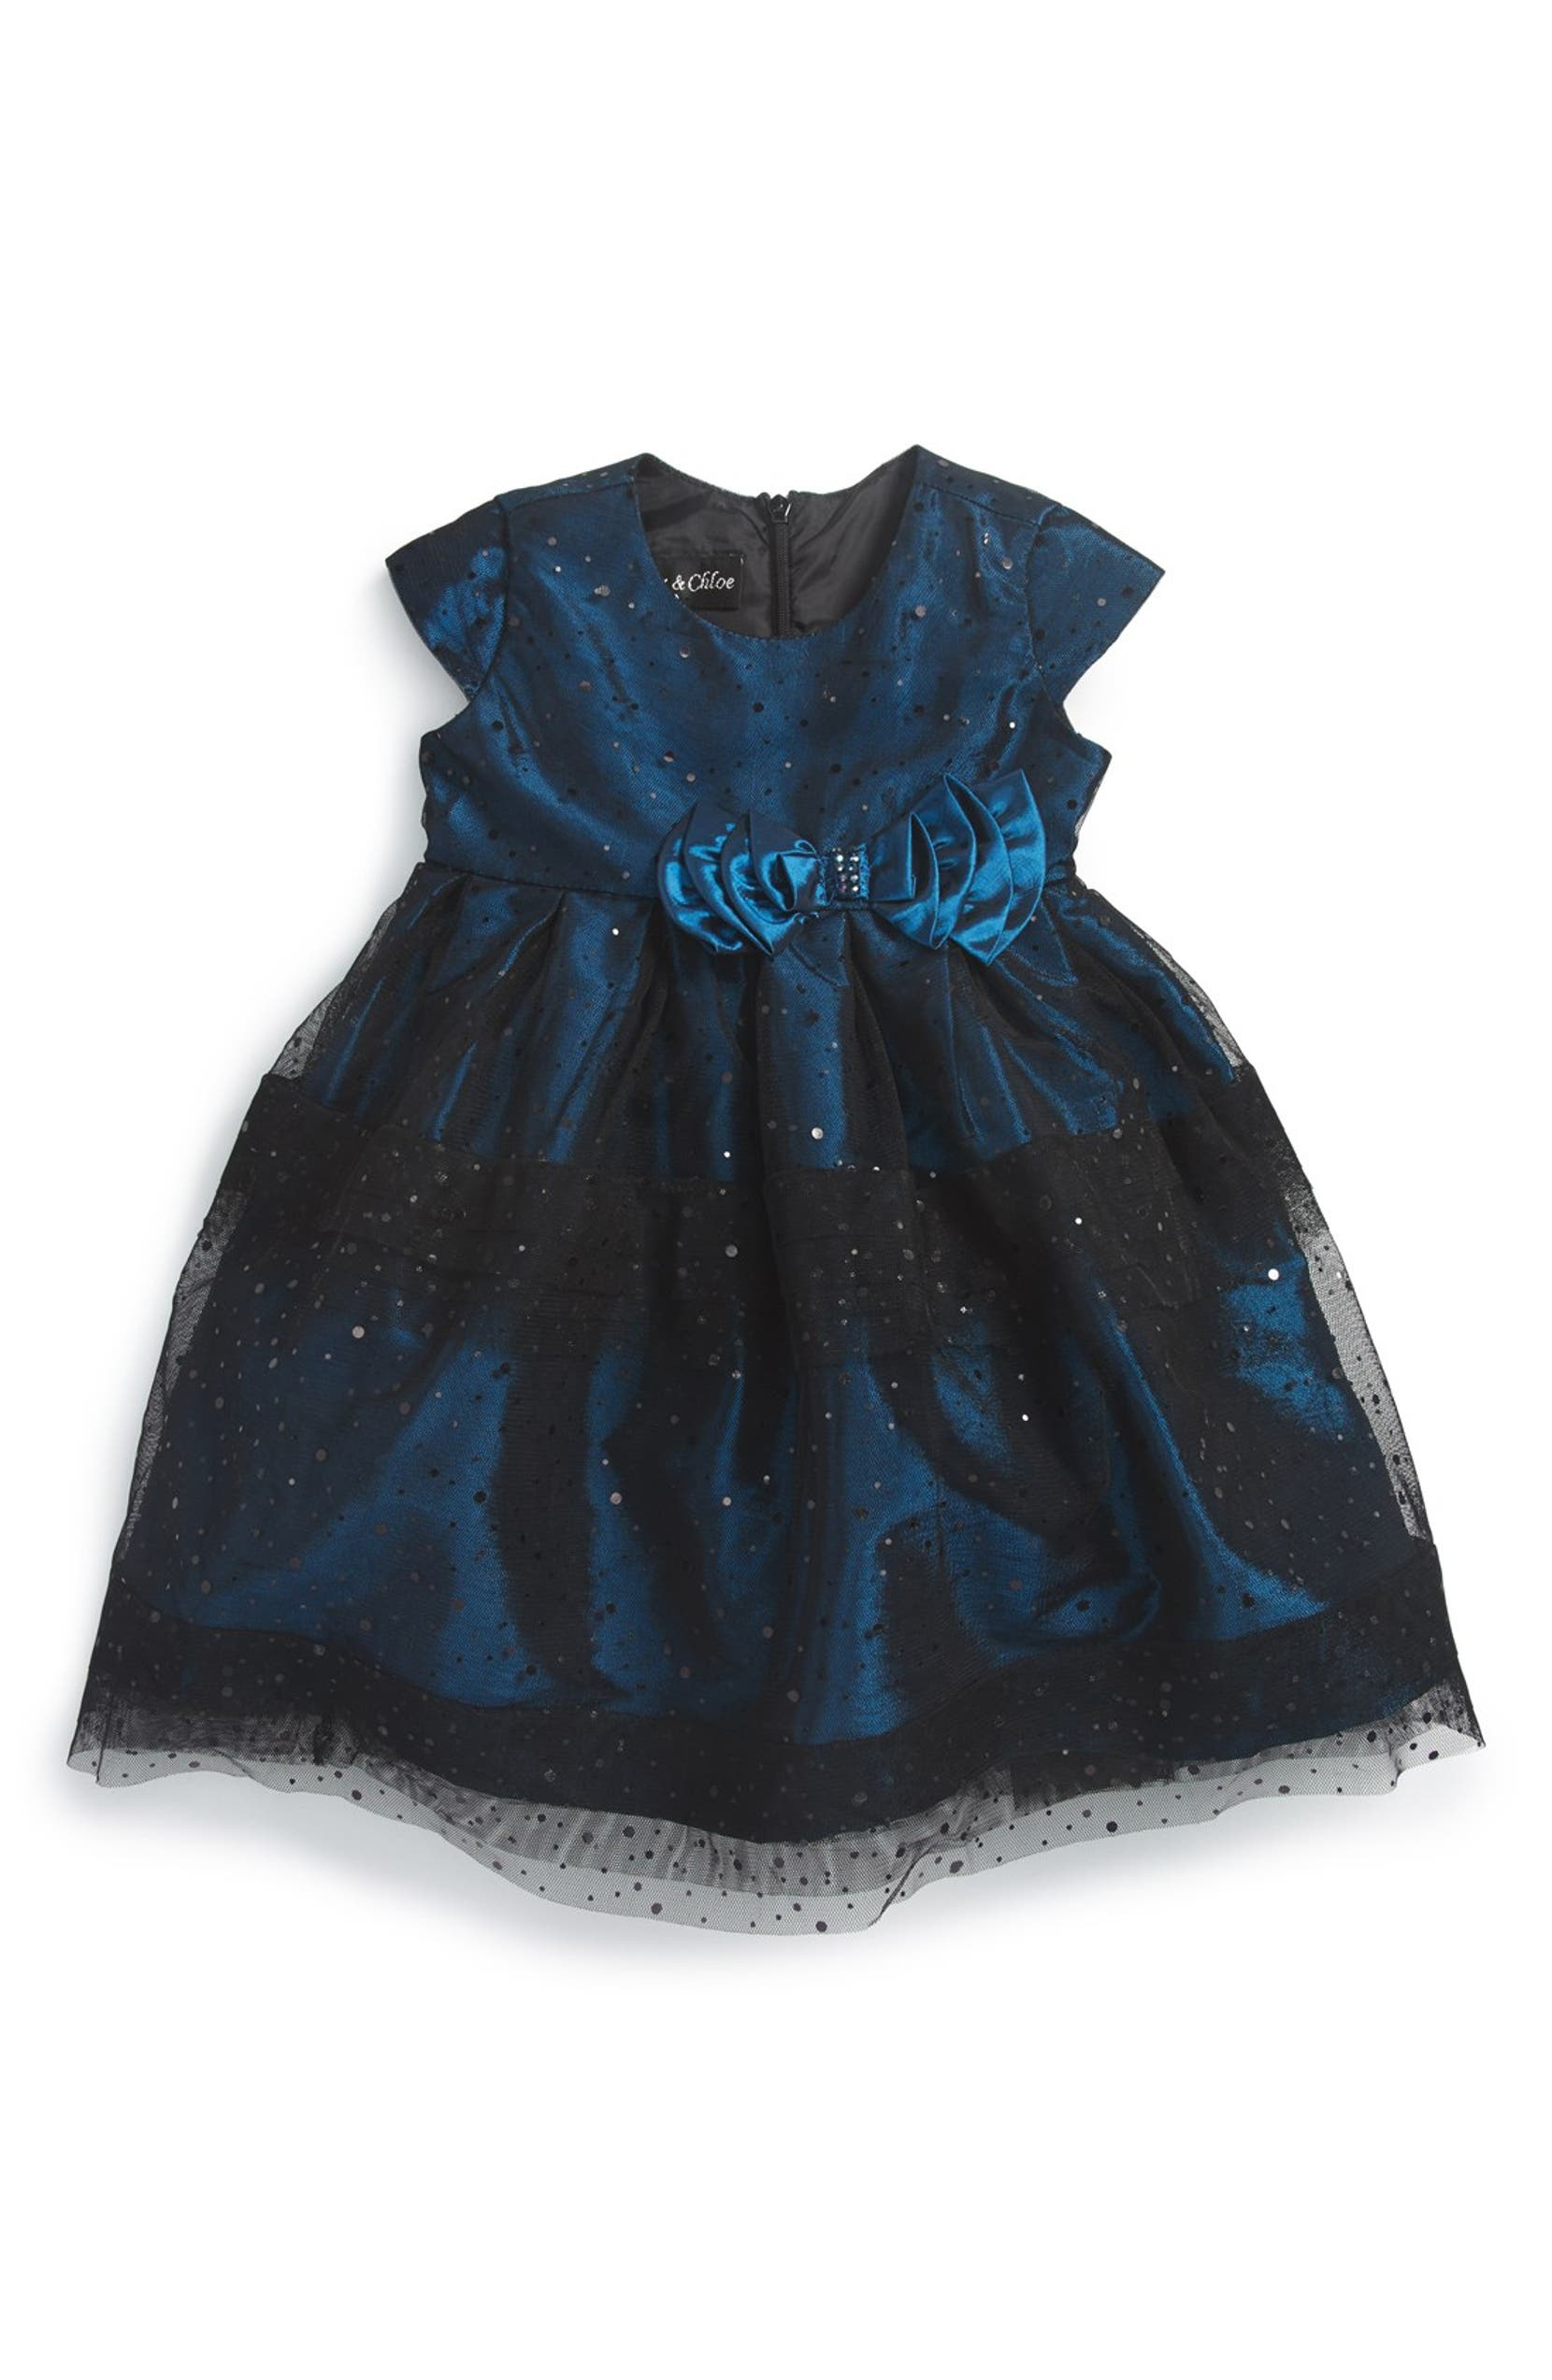 51d879d52e2d Isobella & Chloe 'Midnight Star' Empire Waist Party Dress (Baby Girls) |  Nordstrom